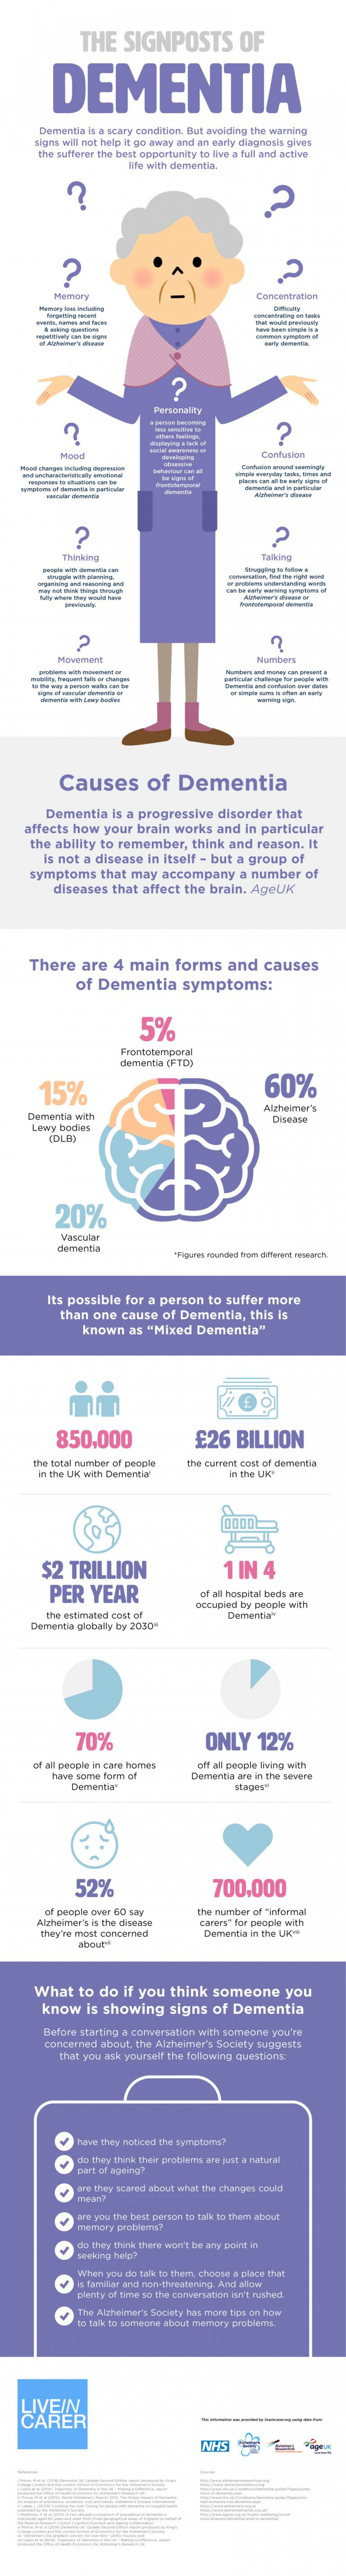 The Signs & Symptoms of Dementia  Infographic